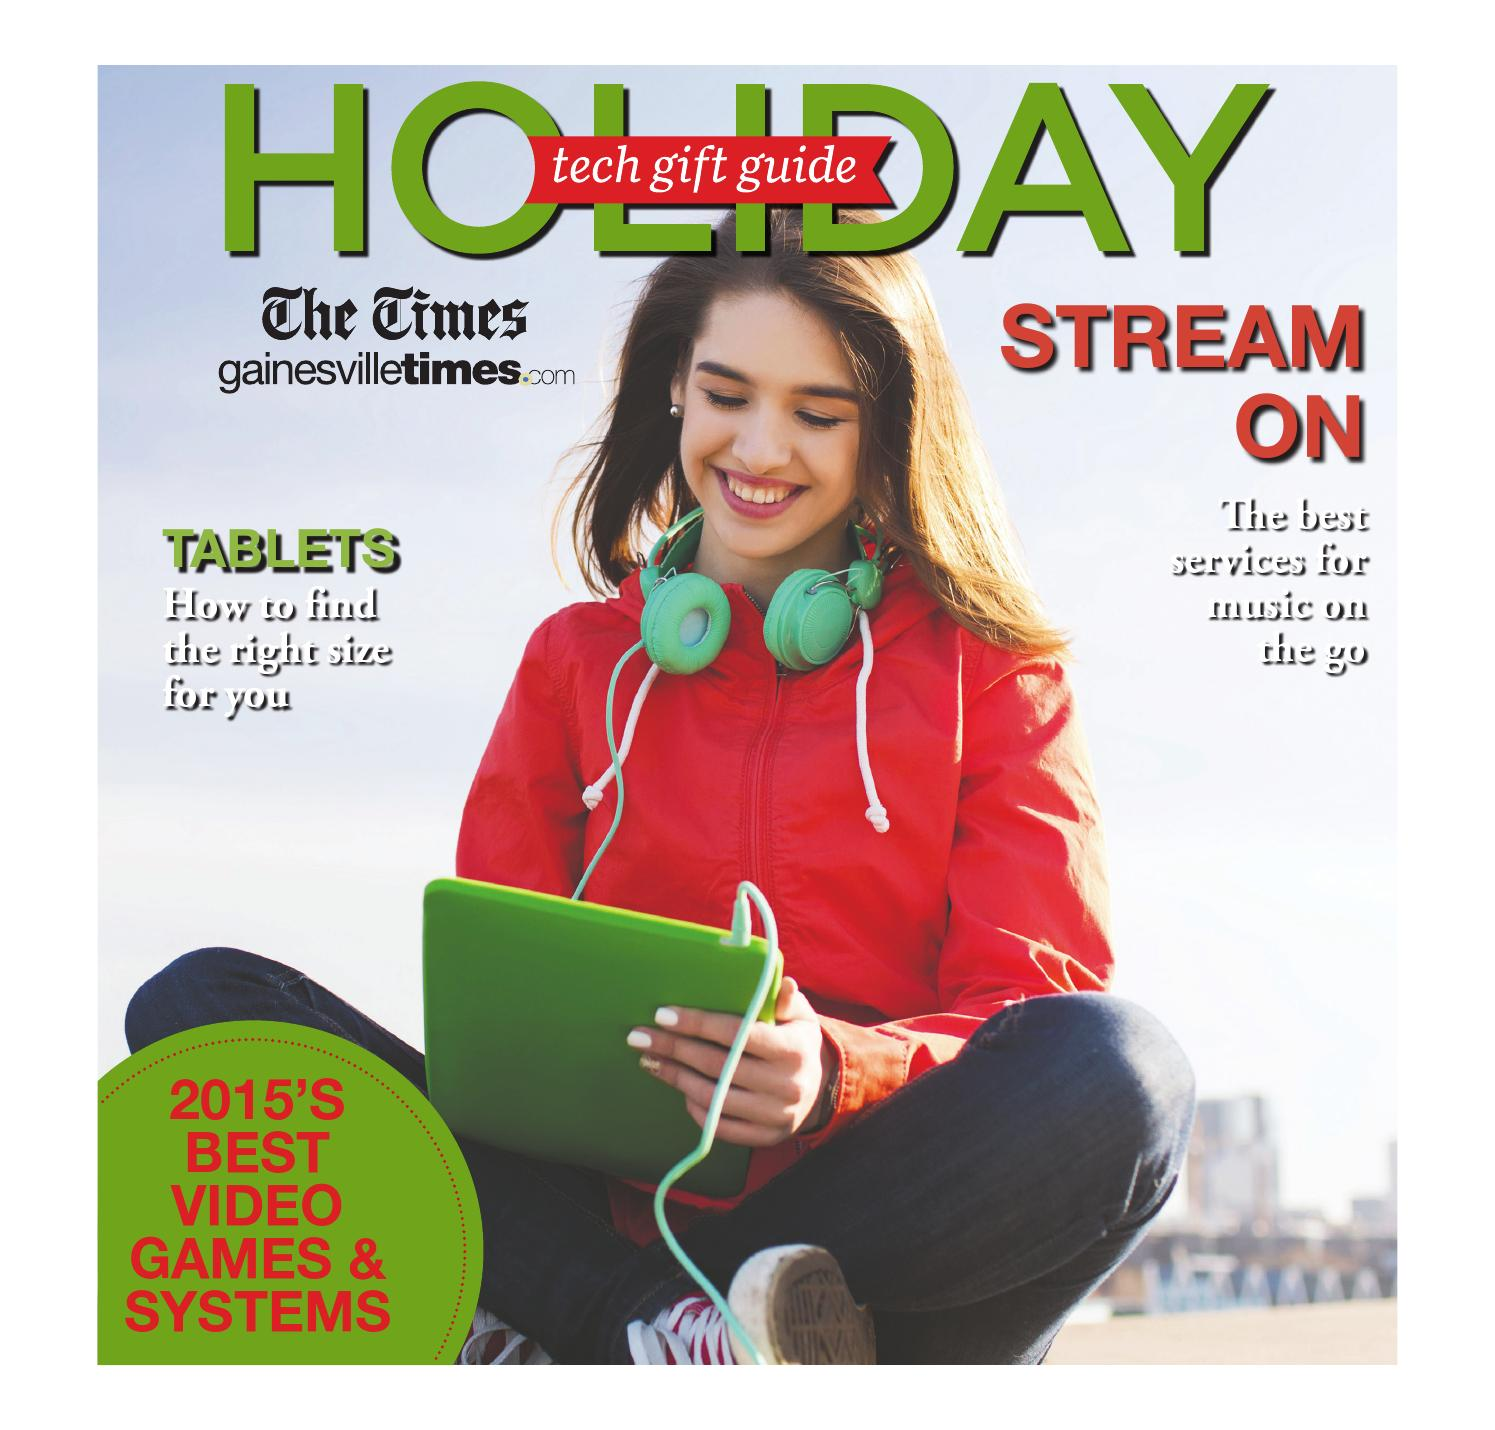 Holiday Tech Gift Guide 2015 by The Times - issuu